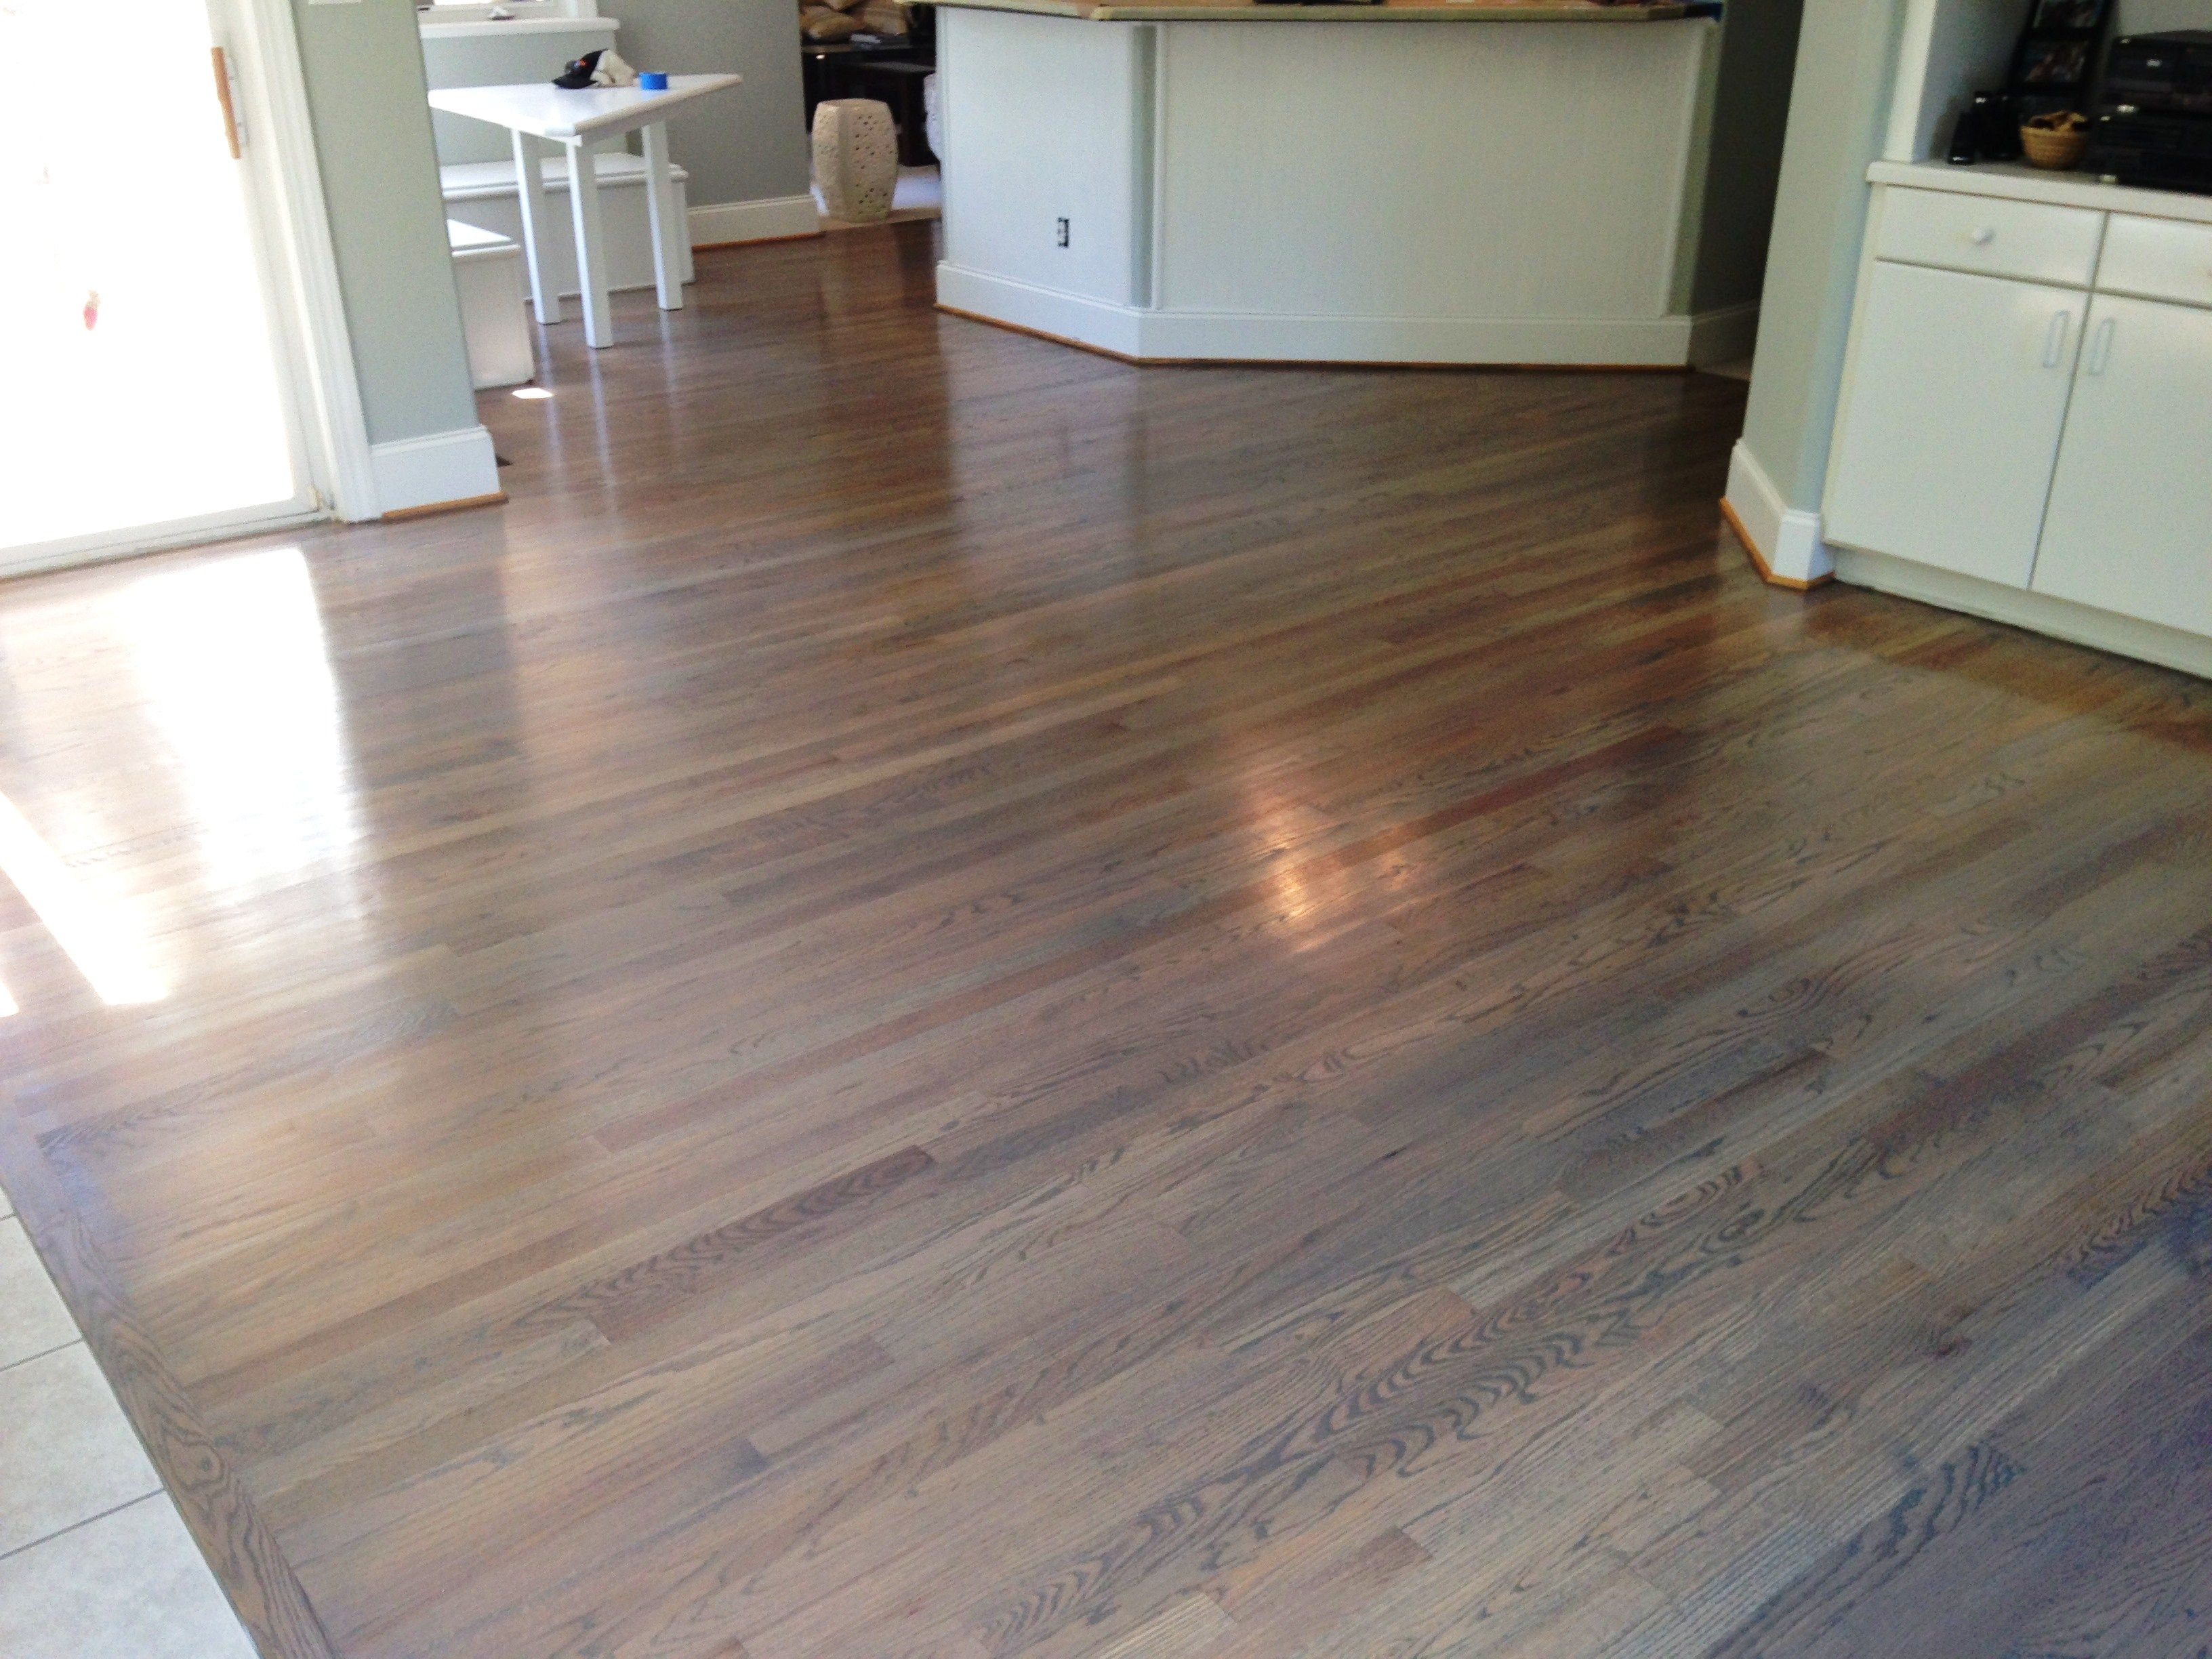 Natural white oak Hardwoods refinished in a custom color Included